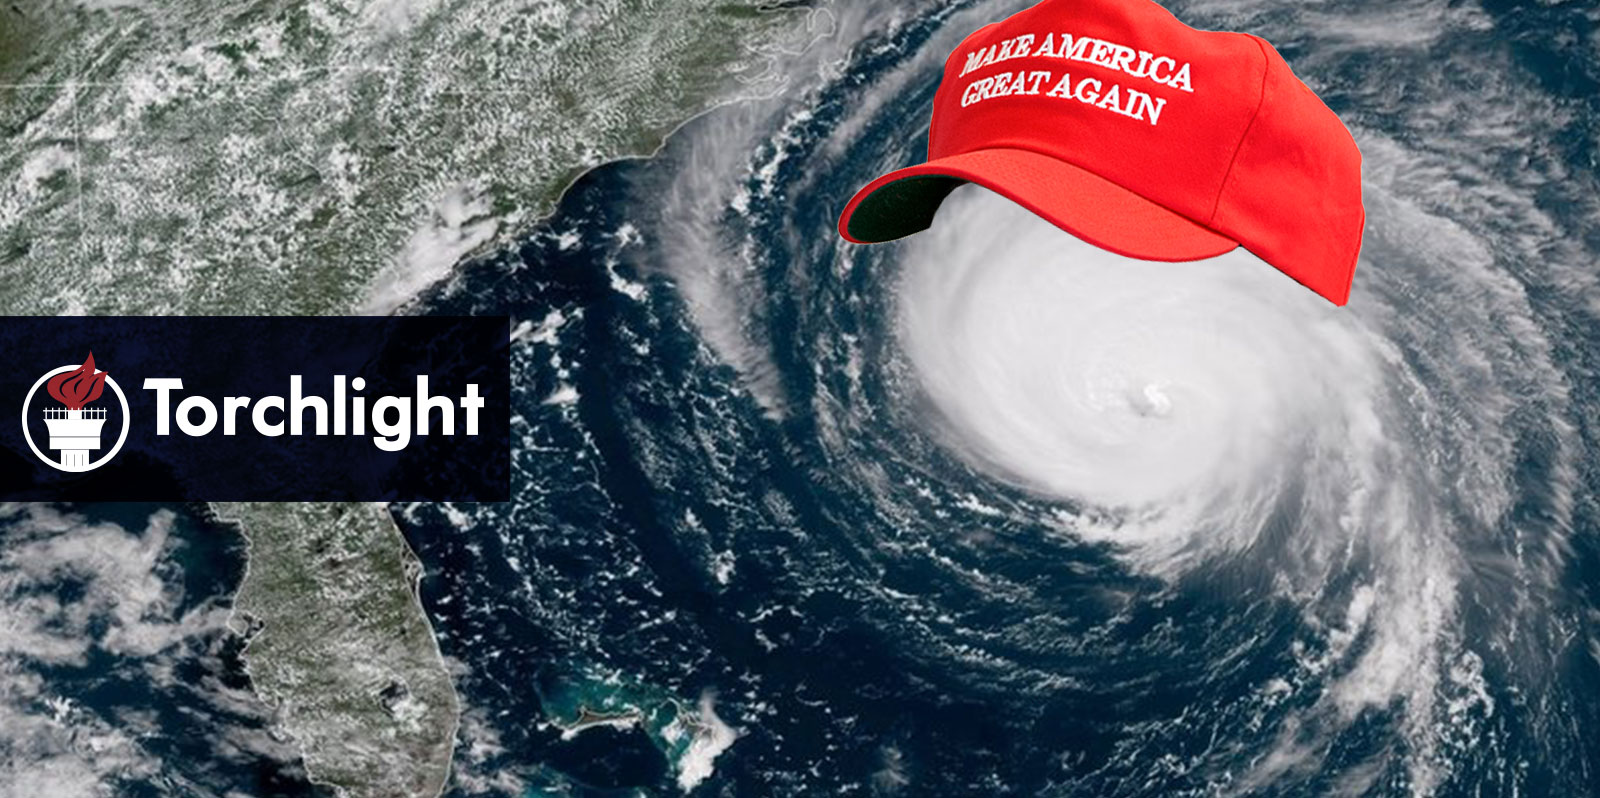 A satellite image of a storm front wearing a MAGA hat